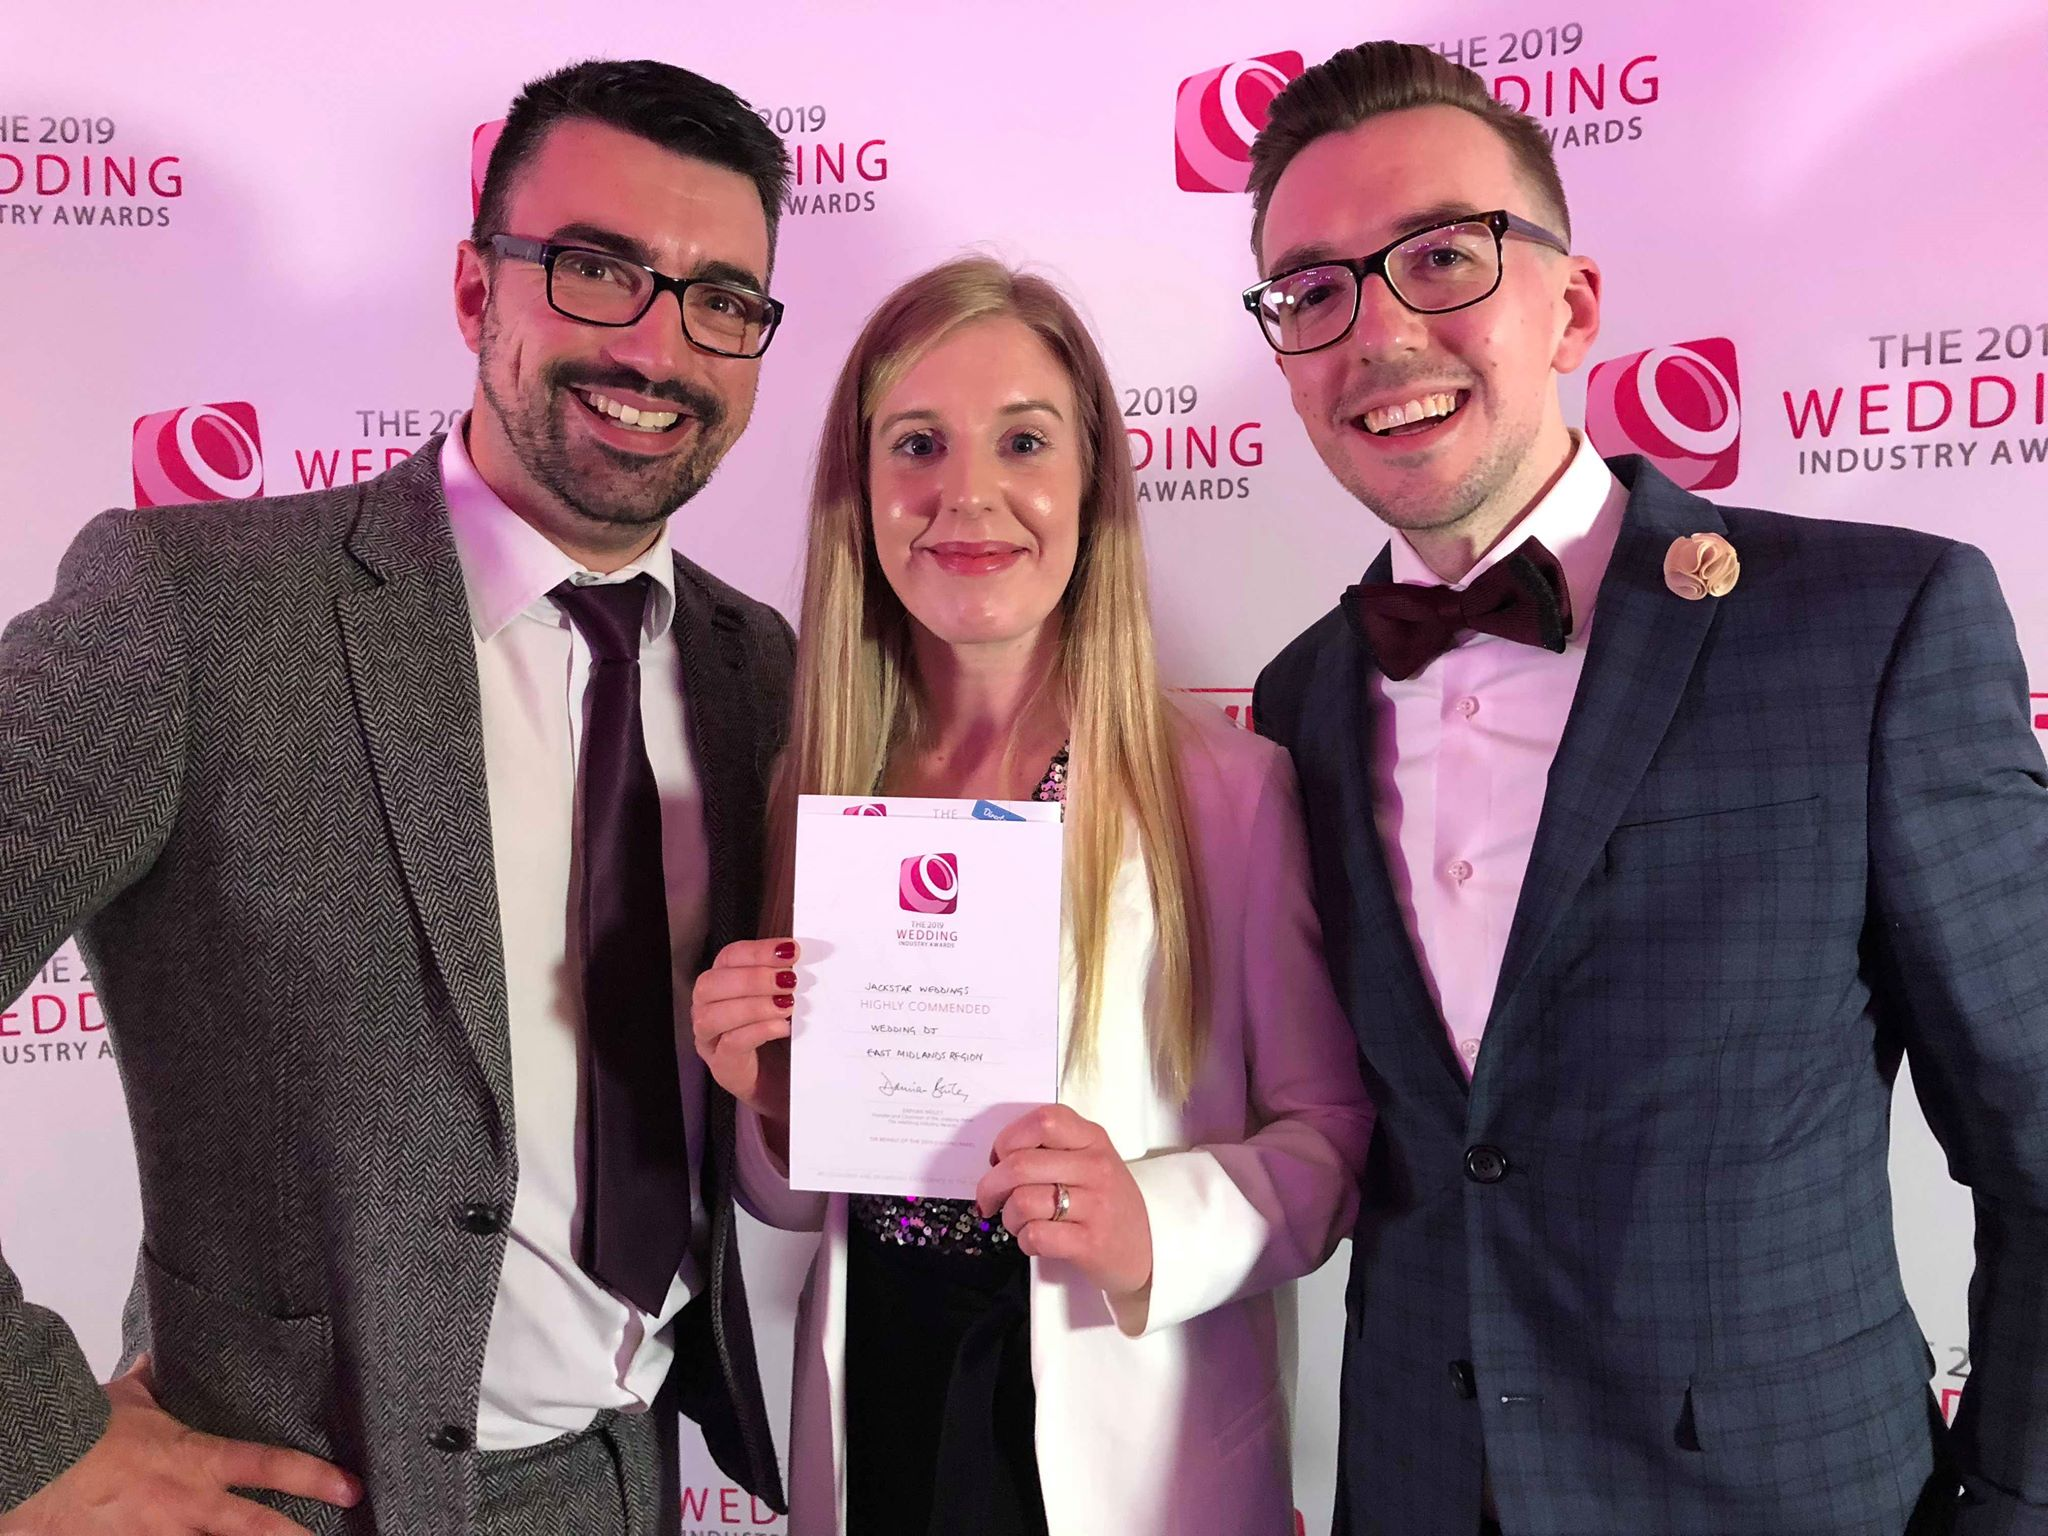 DJ Tom with Louise and Jack at the Wedding Industry Awards